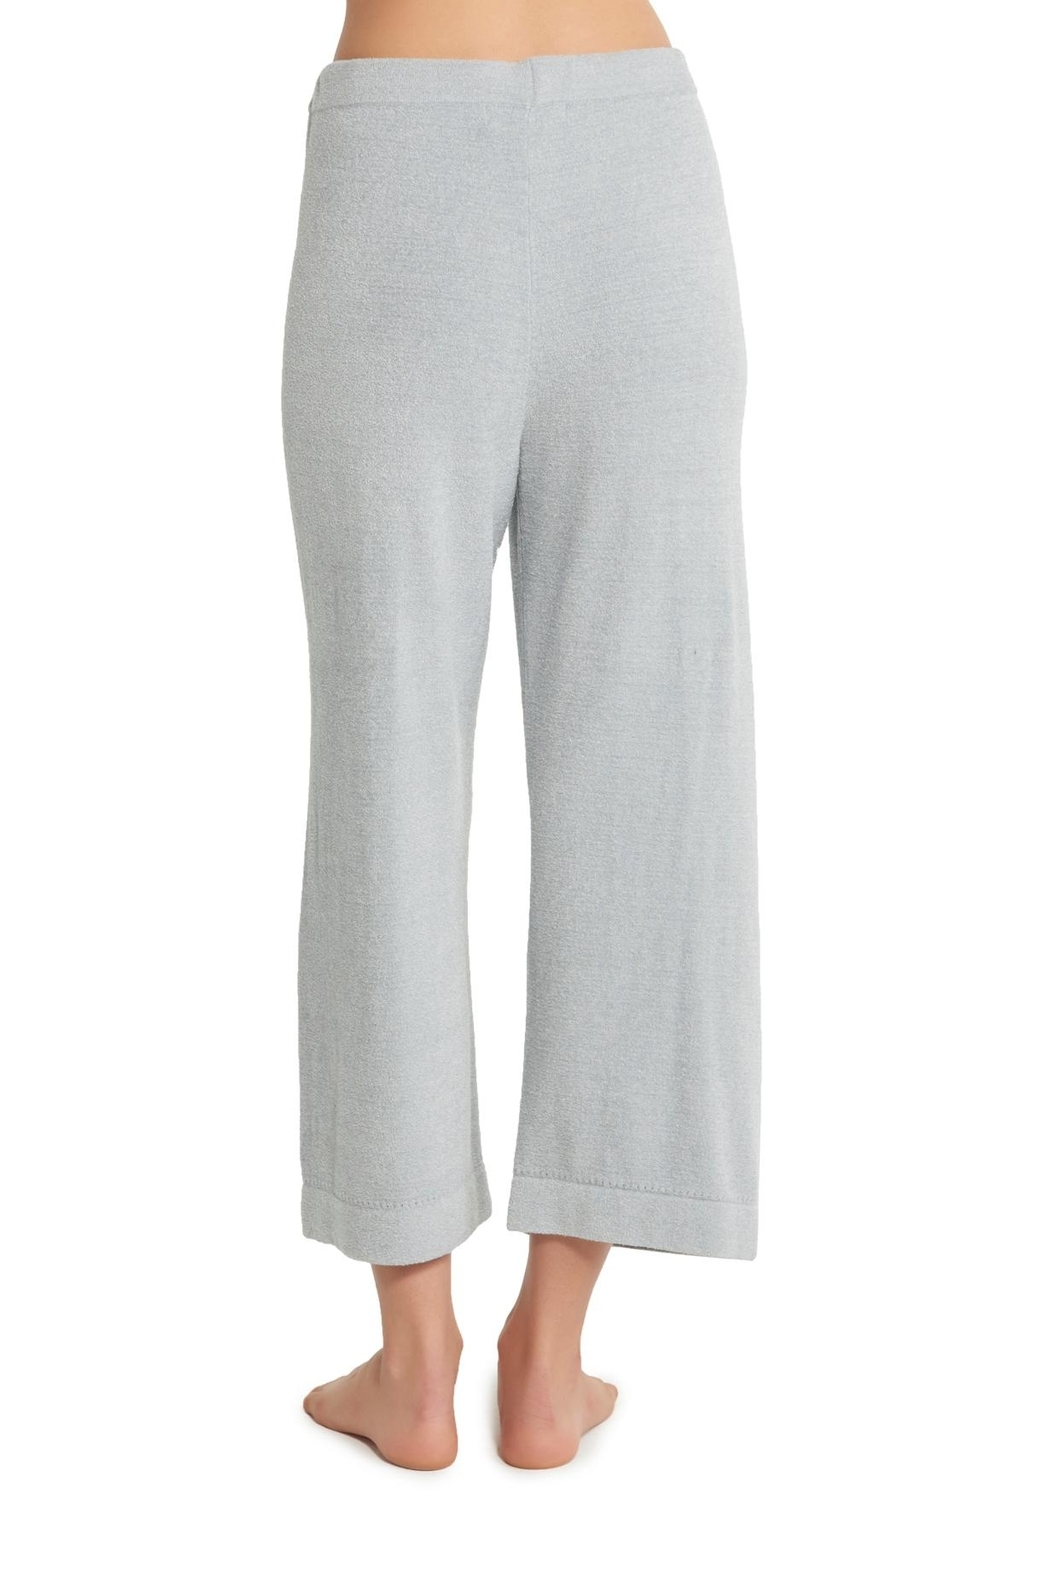 Barefoot Dreams Cozychic Ultralite Culotte - Side Cropped Image